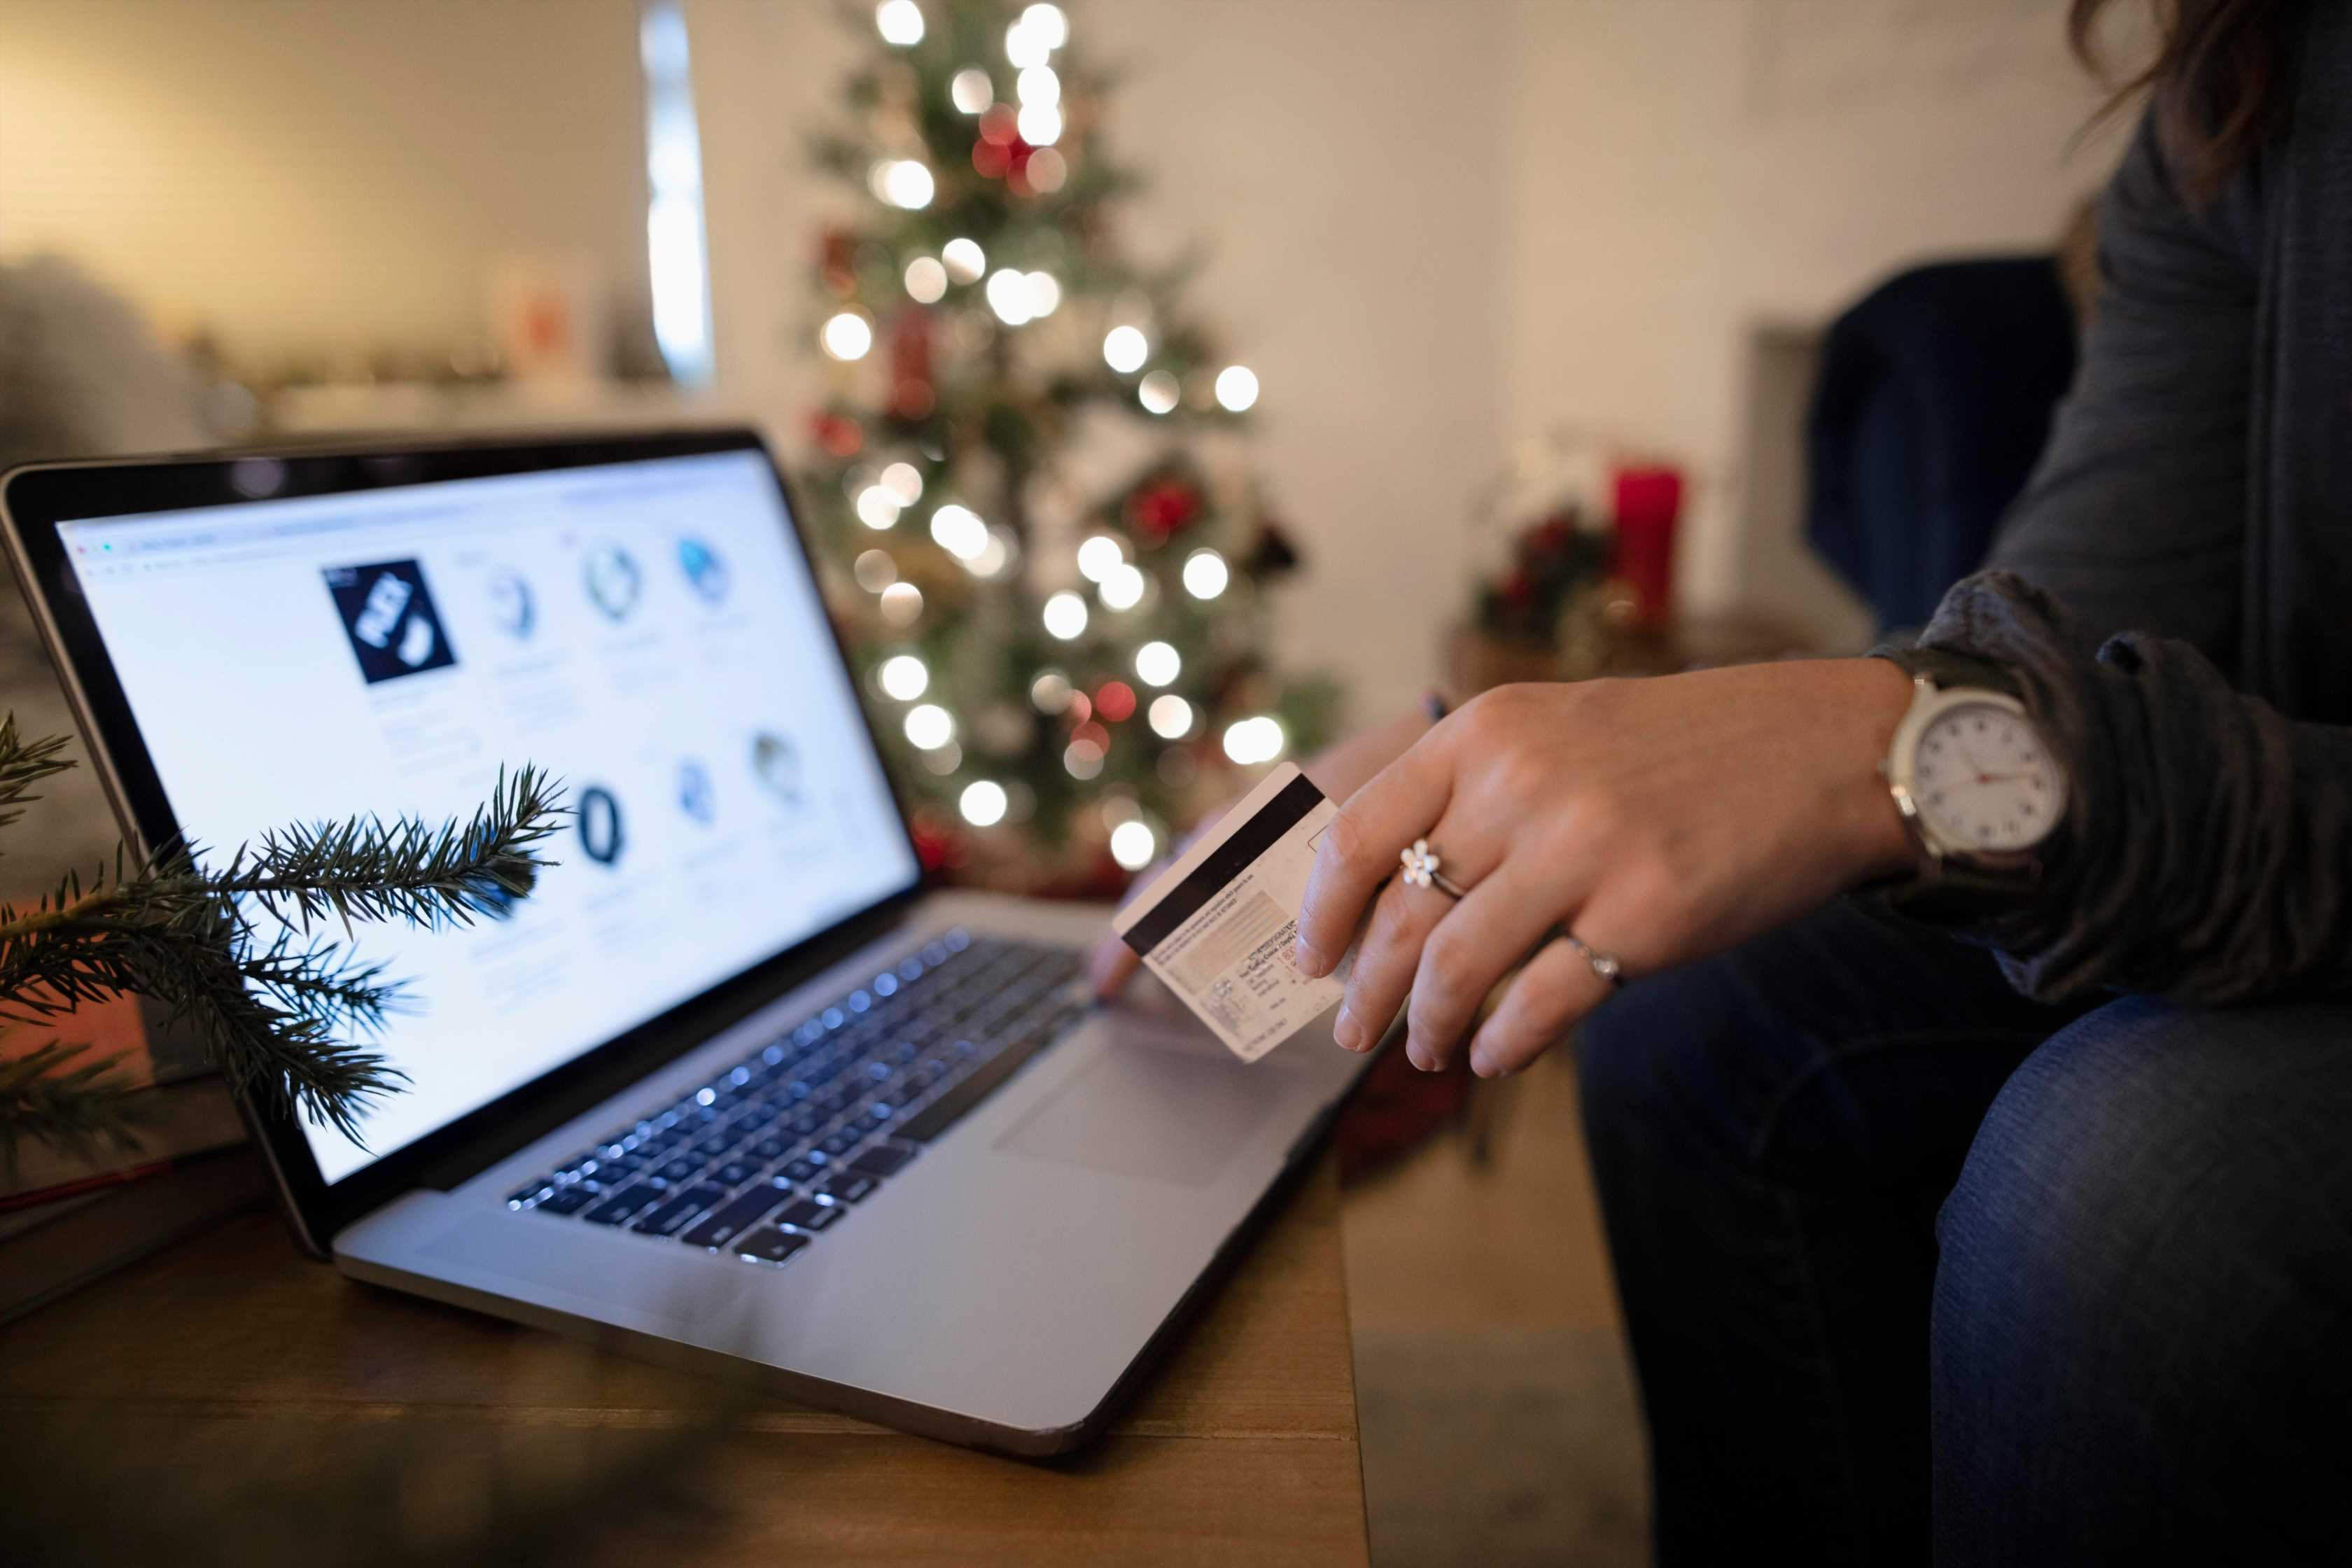 Fears of Christmas shopping chaos as banks introduce new 'ultra secure' payment system